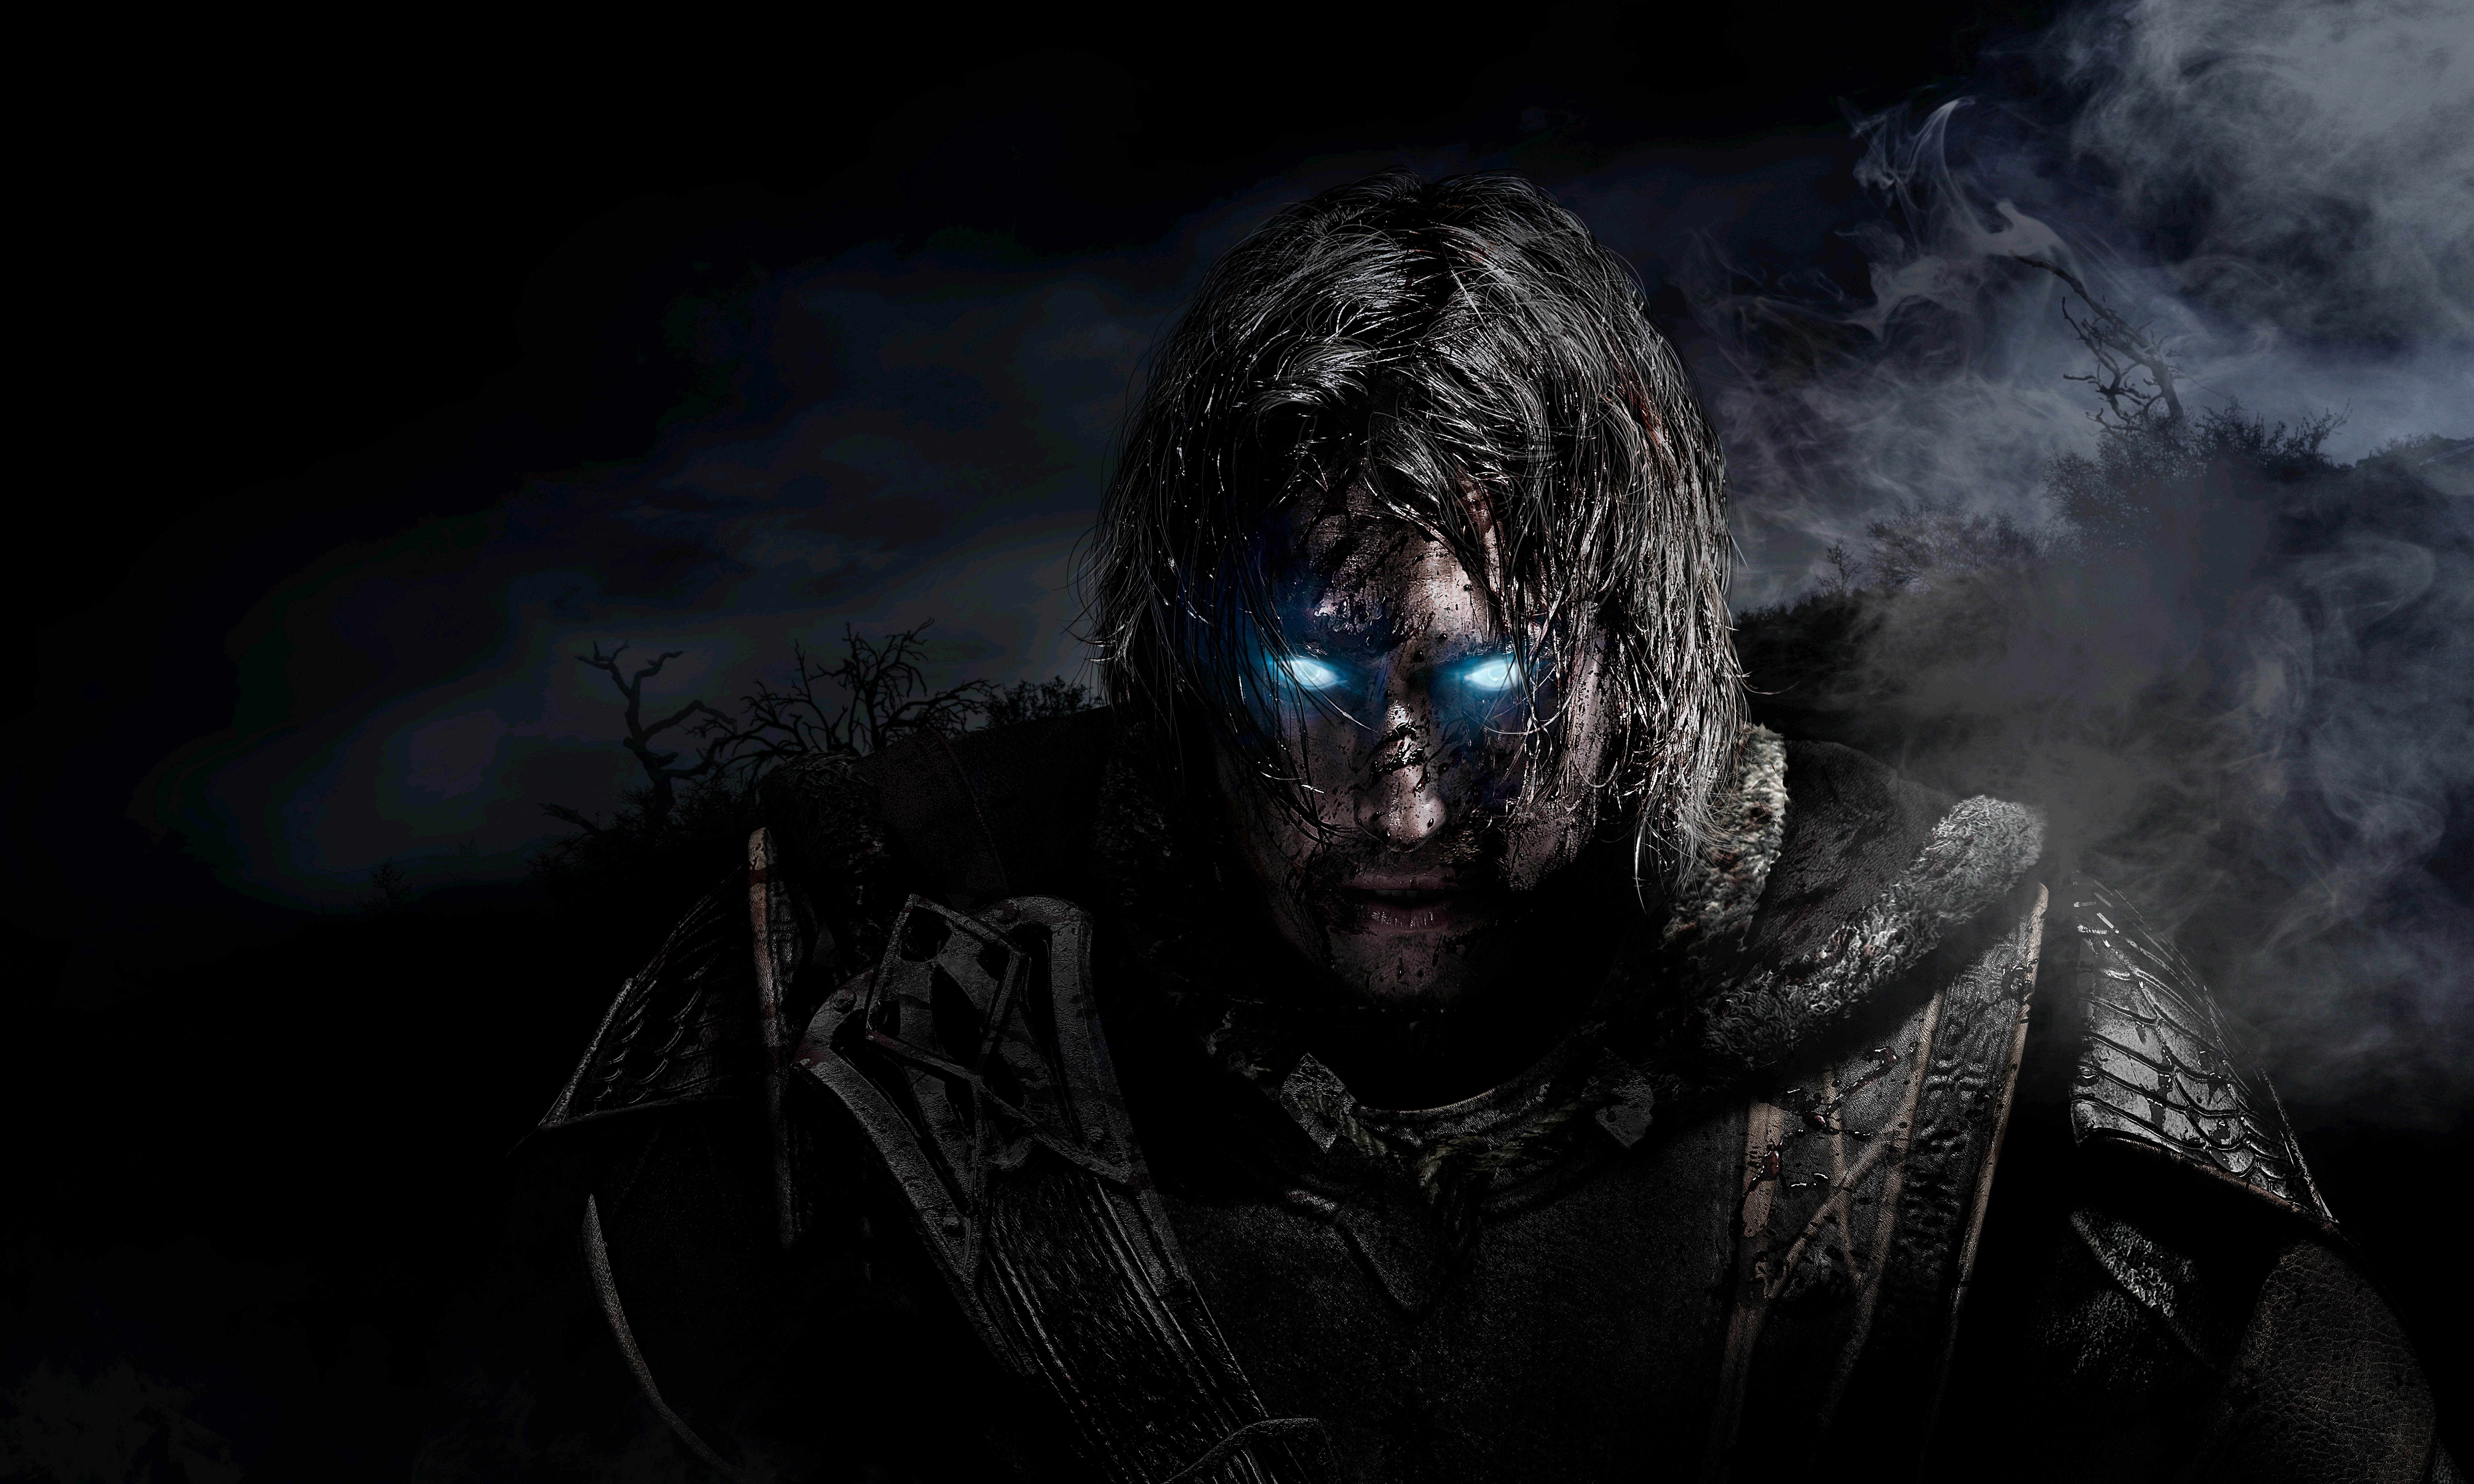 Shadow Of War Hd Wallpaper Posted By Michelle Cunningham